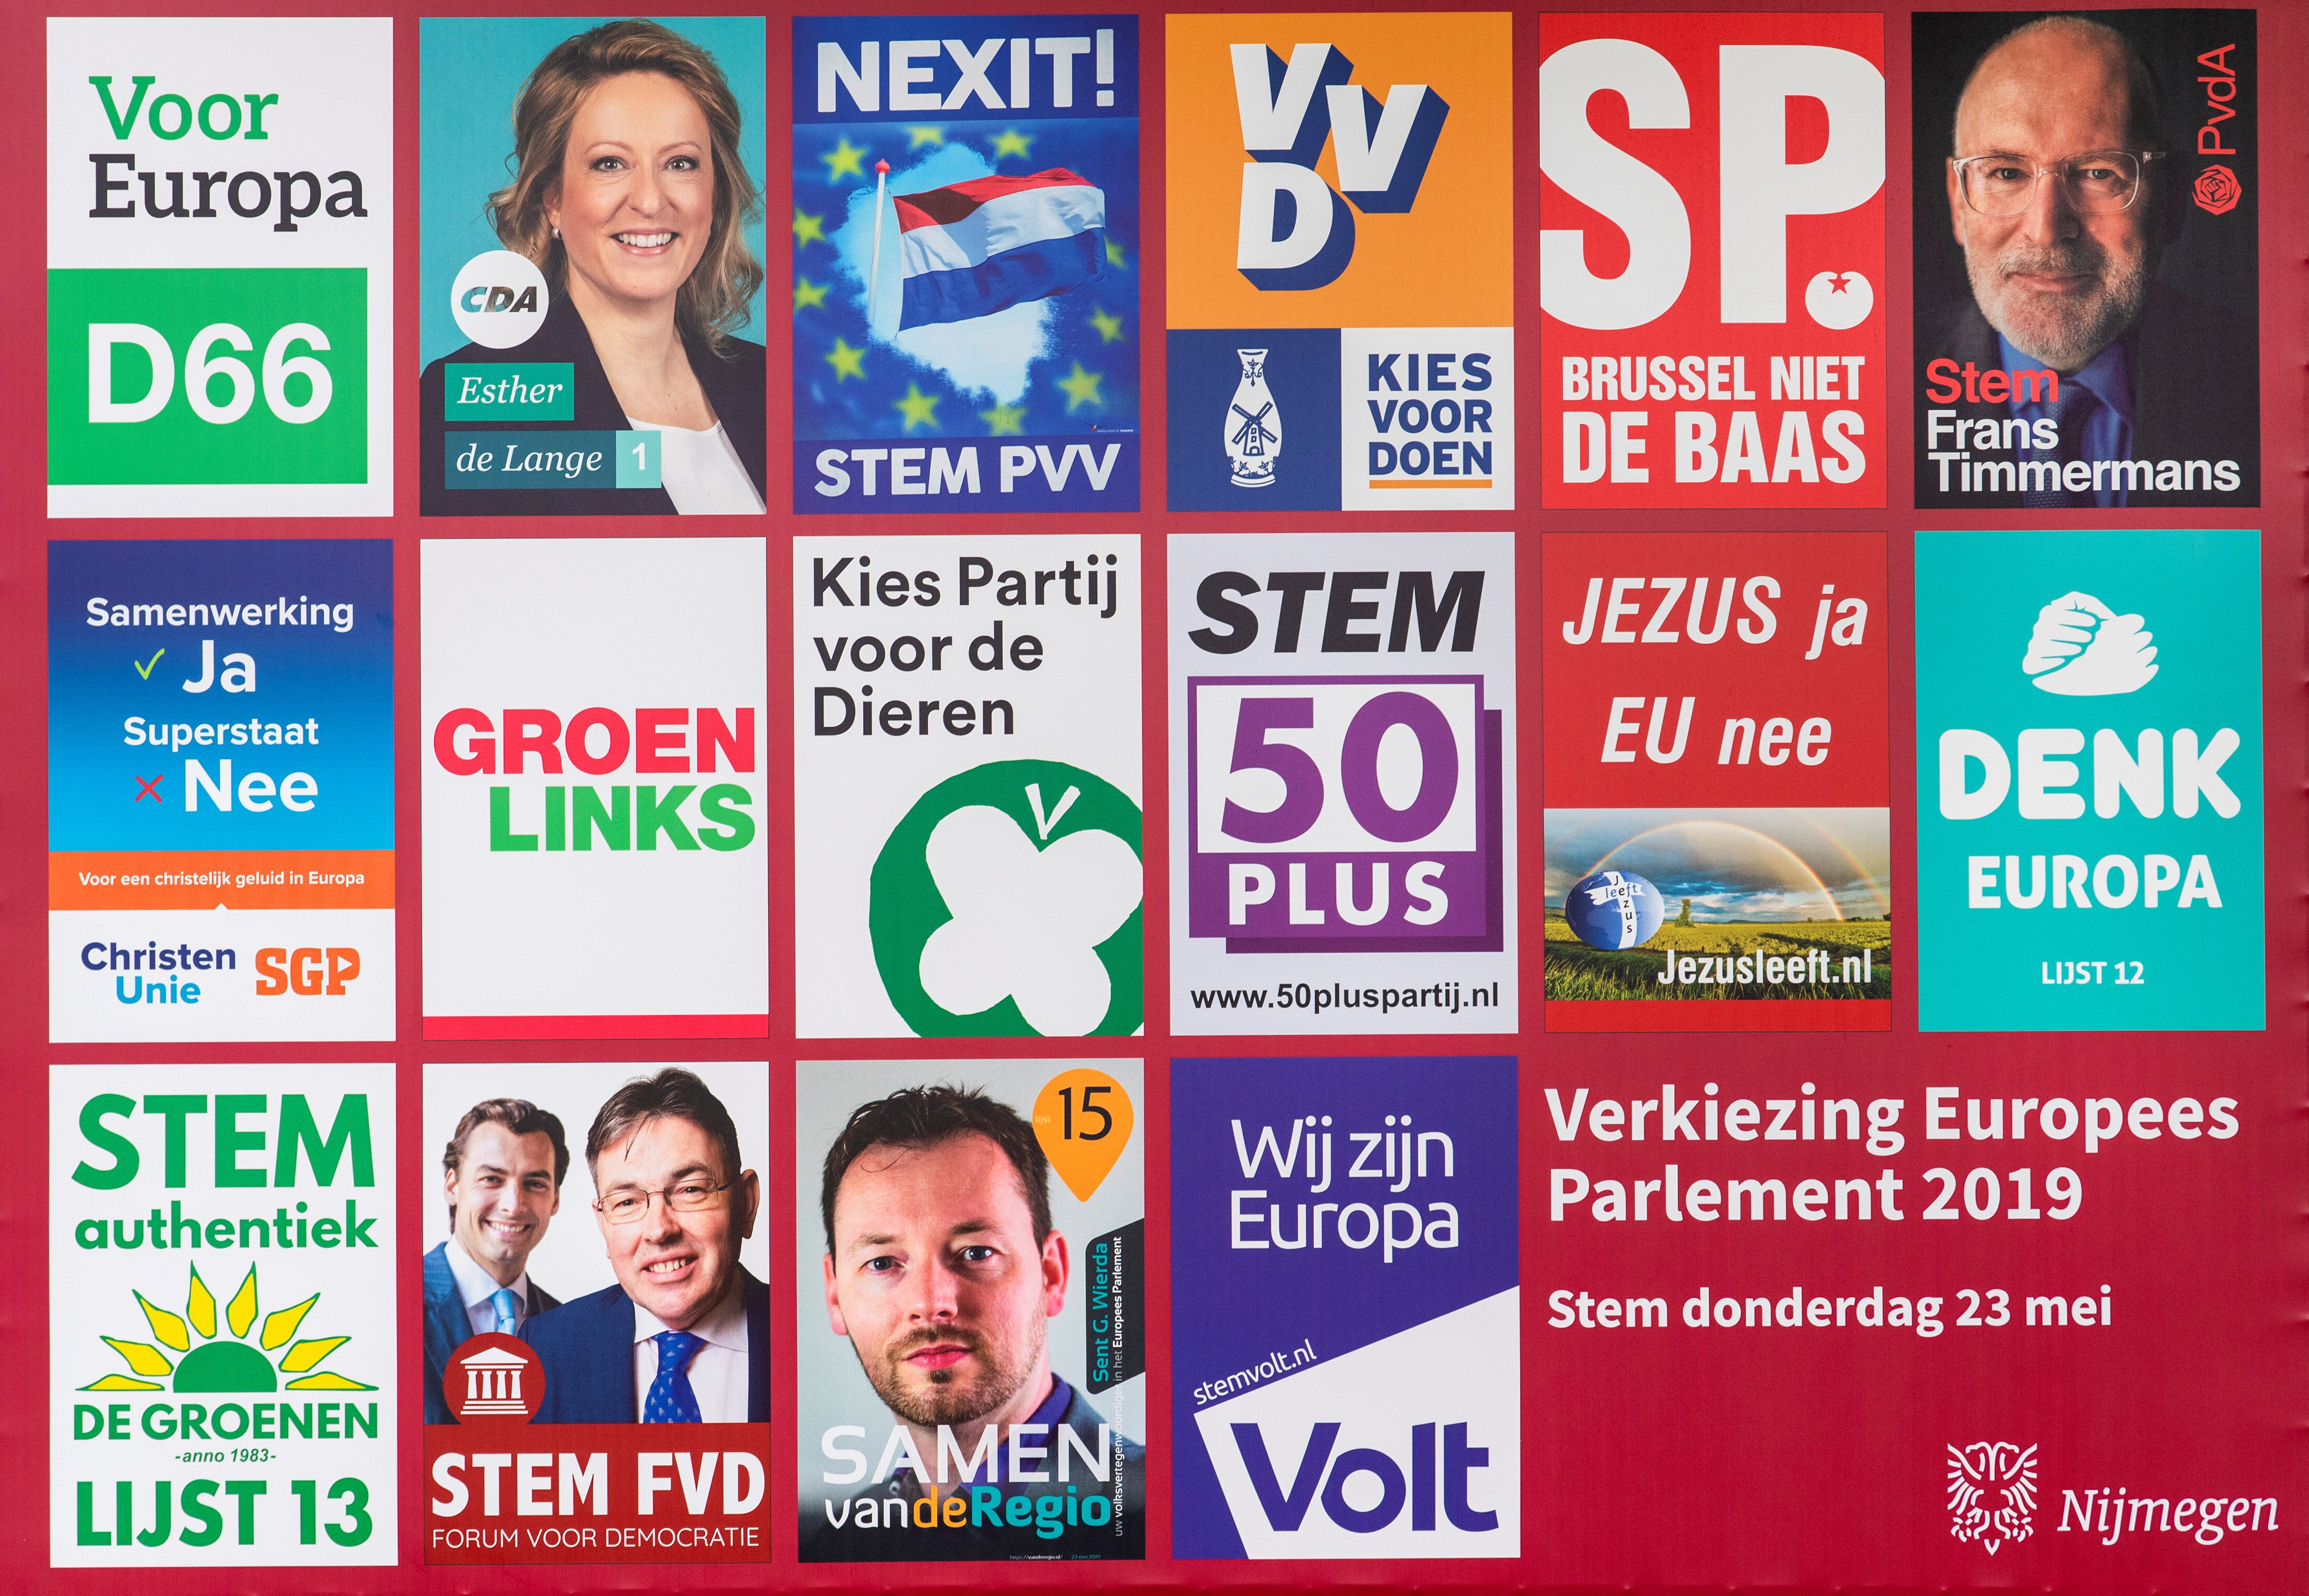 Europe's Populists Wanted to End the EU. Now They Want to Control It.